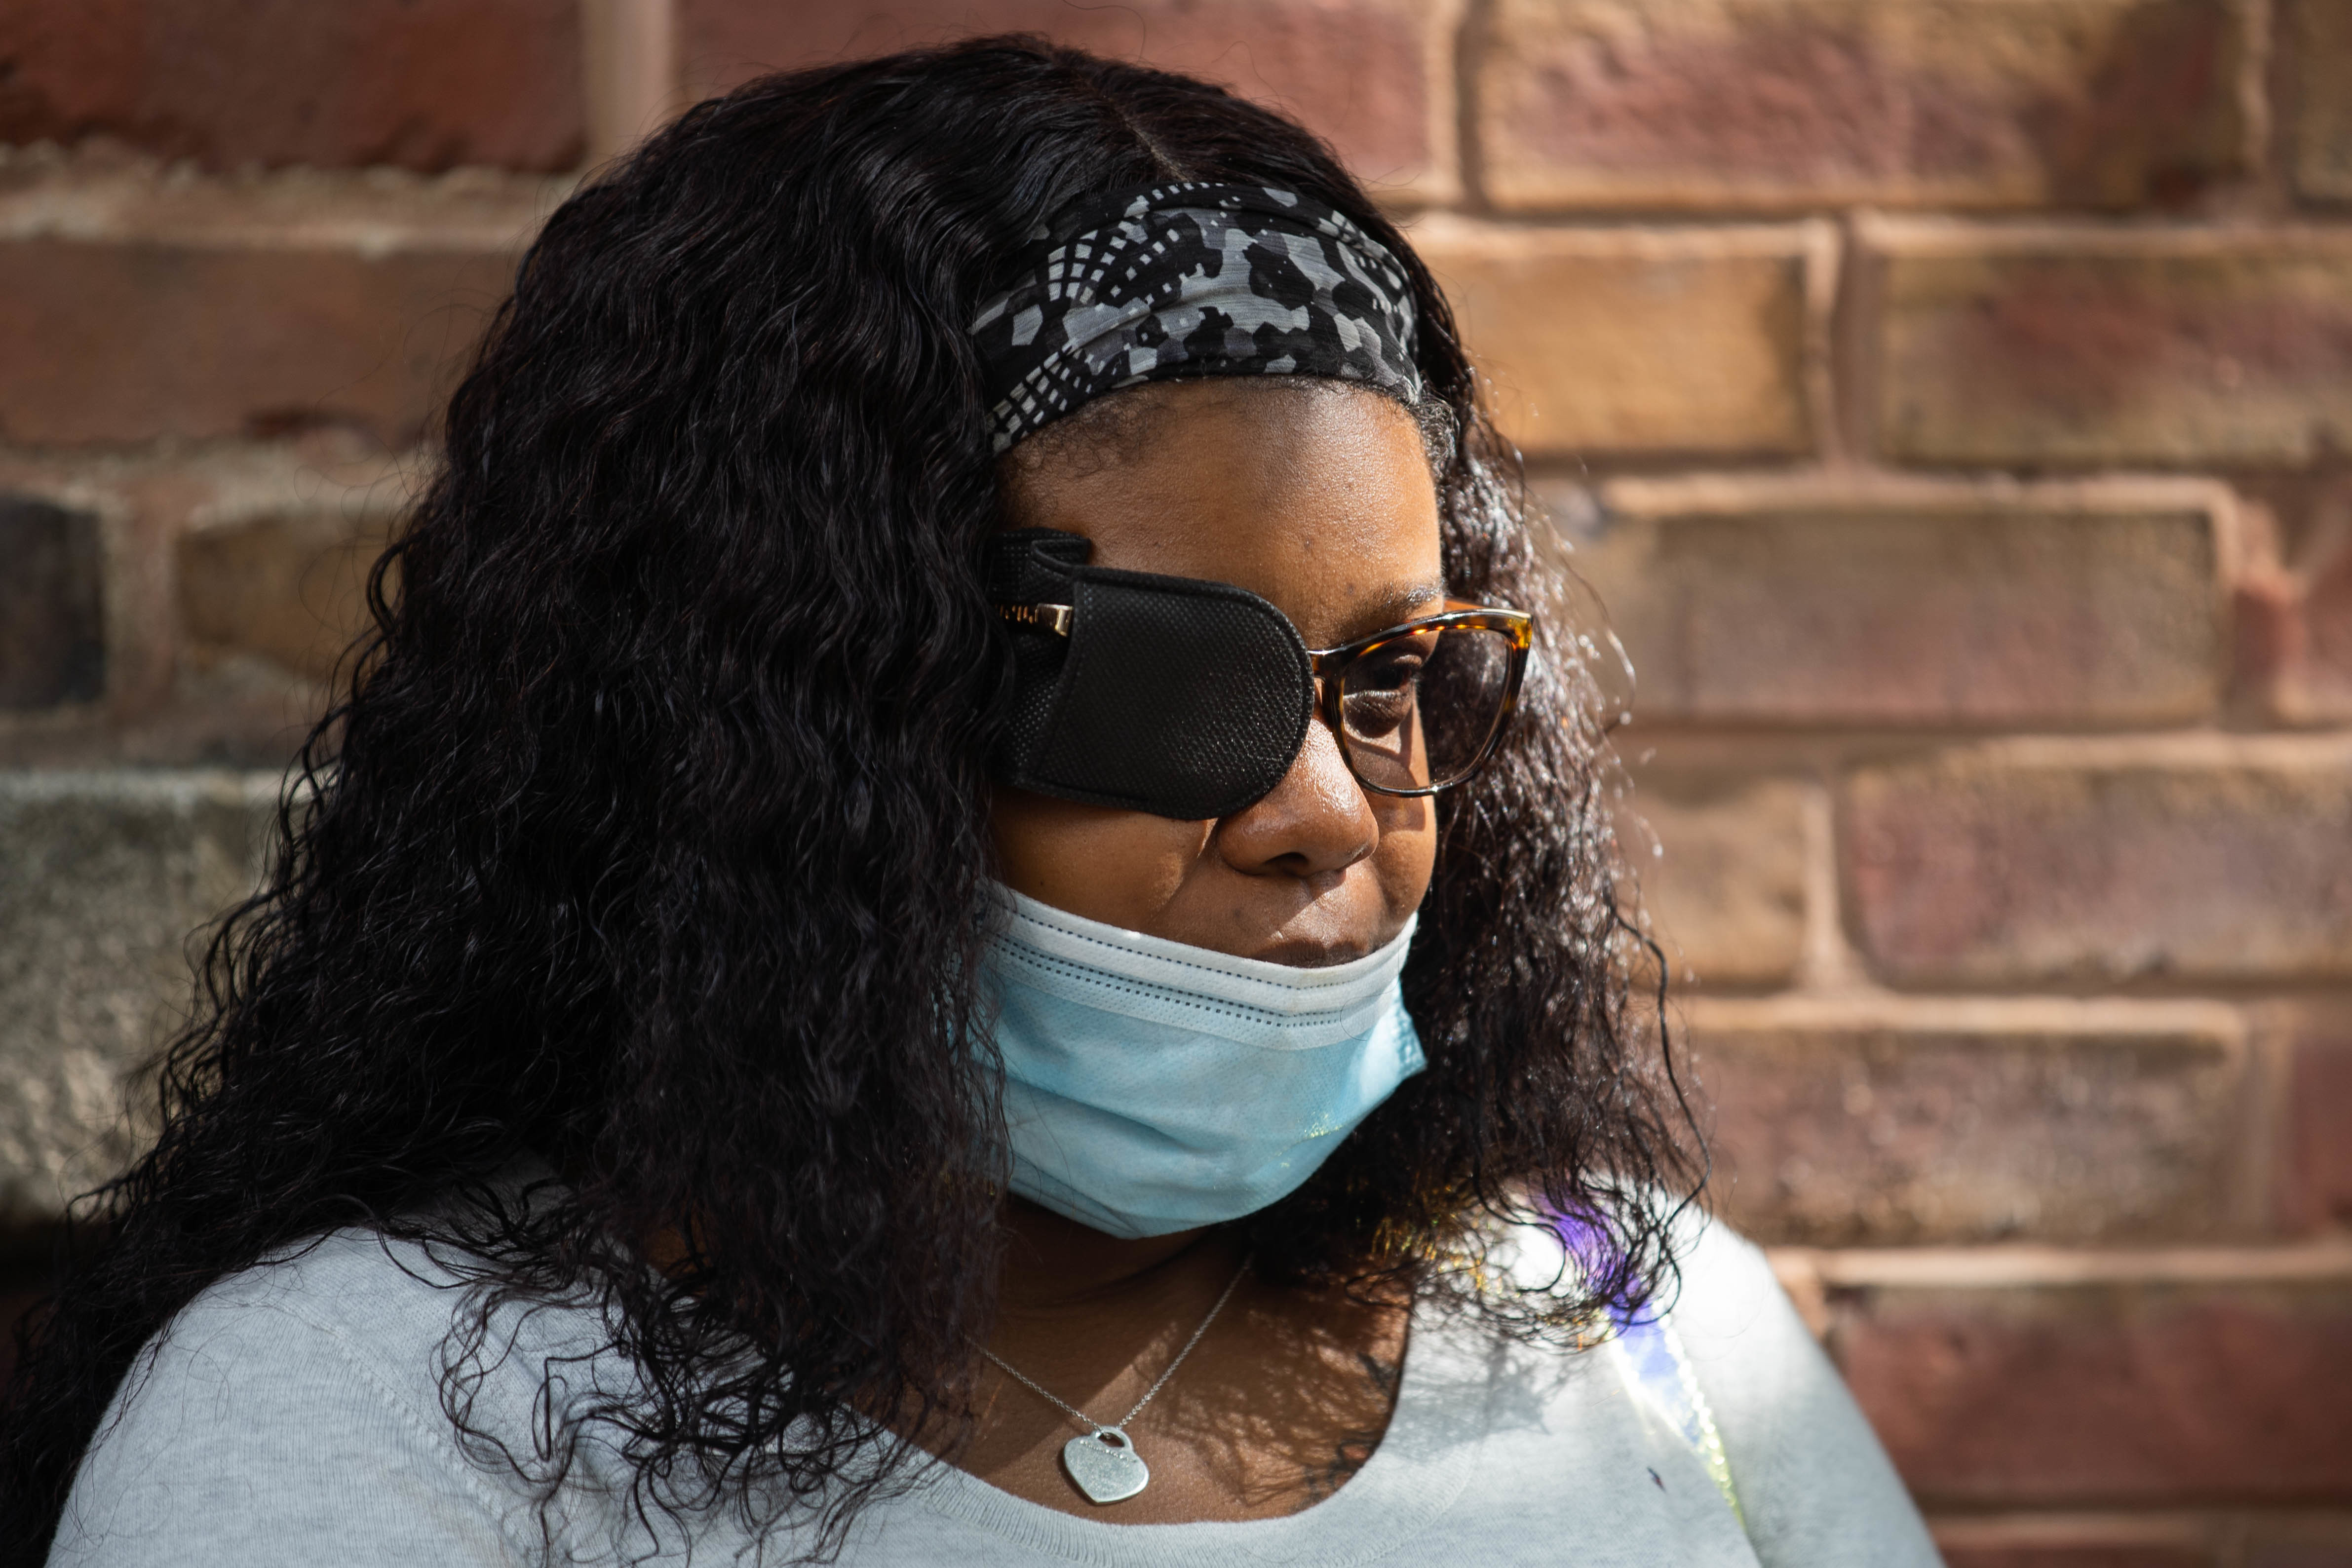 Mia Wright, who said a police officer grabbed her out of her car by her hair and knelt on her neck outside Brickyard Mall, attends a press conference near 314 N. Loomis St. on Sept. 29, 2020.